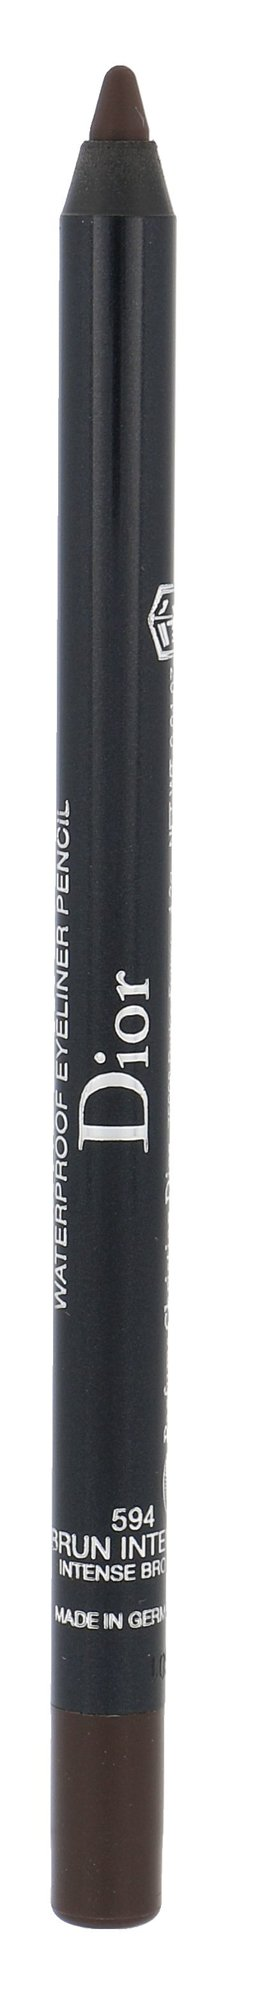 Christian Dior Eyeliner Cosmetic 1,2ml 594 Intense Brown